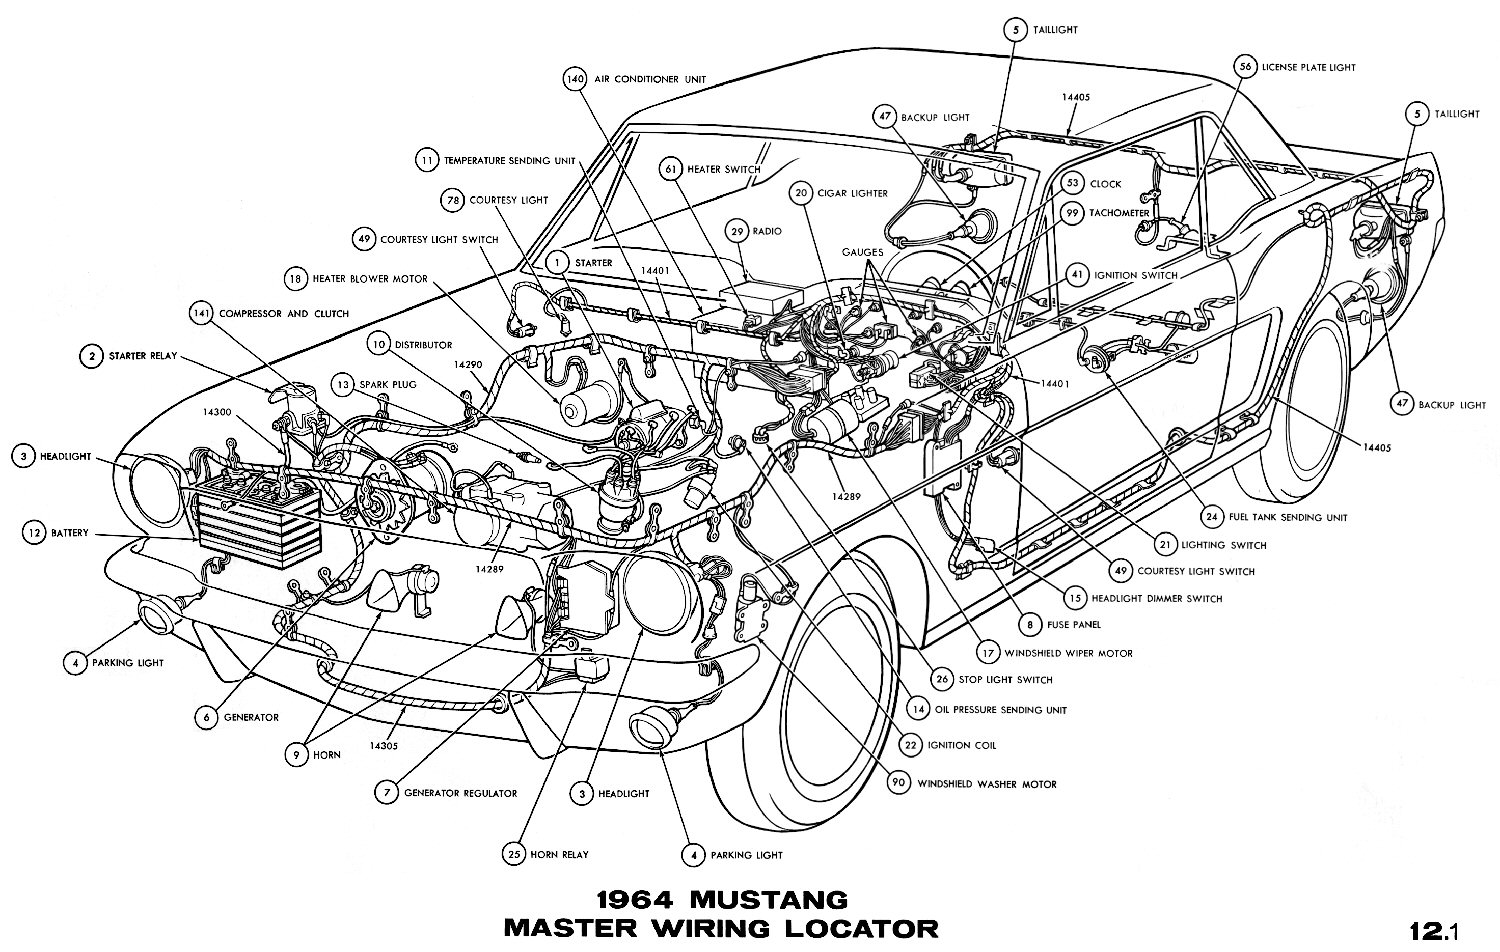 hight resolution of 1967 ford mustang engine diagram wiring diagrams dimensions 1967 ford mustang engine diagram 1967 ford mustang engine diagram